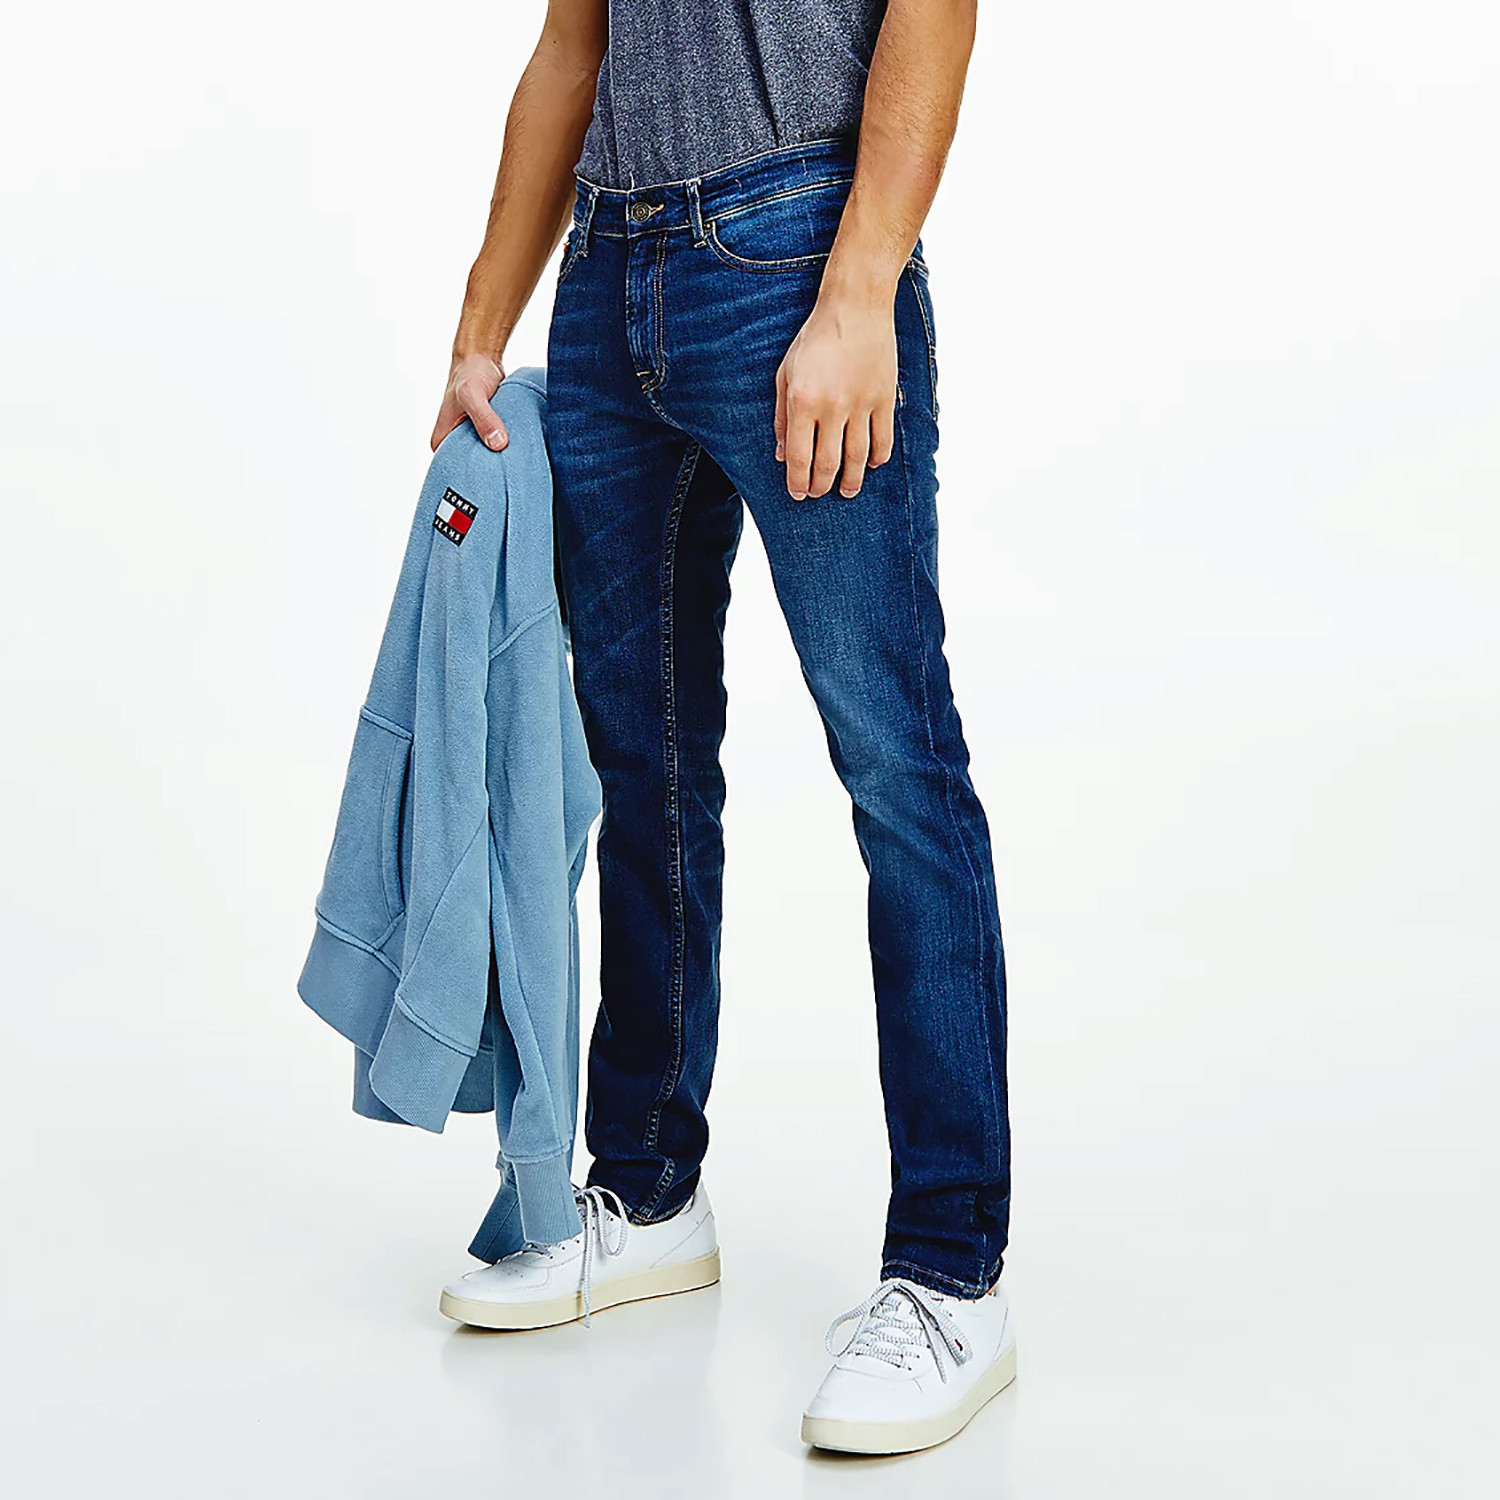 Tommy Jeans Scanton Slim Fit Faded Ανδρικό Τζιν Παντελόνι (Μήκος 32L) (9000089966_55726)